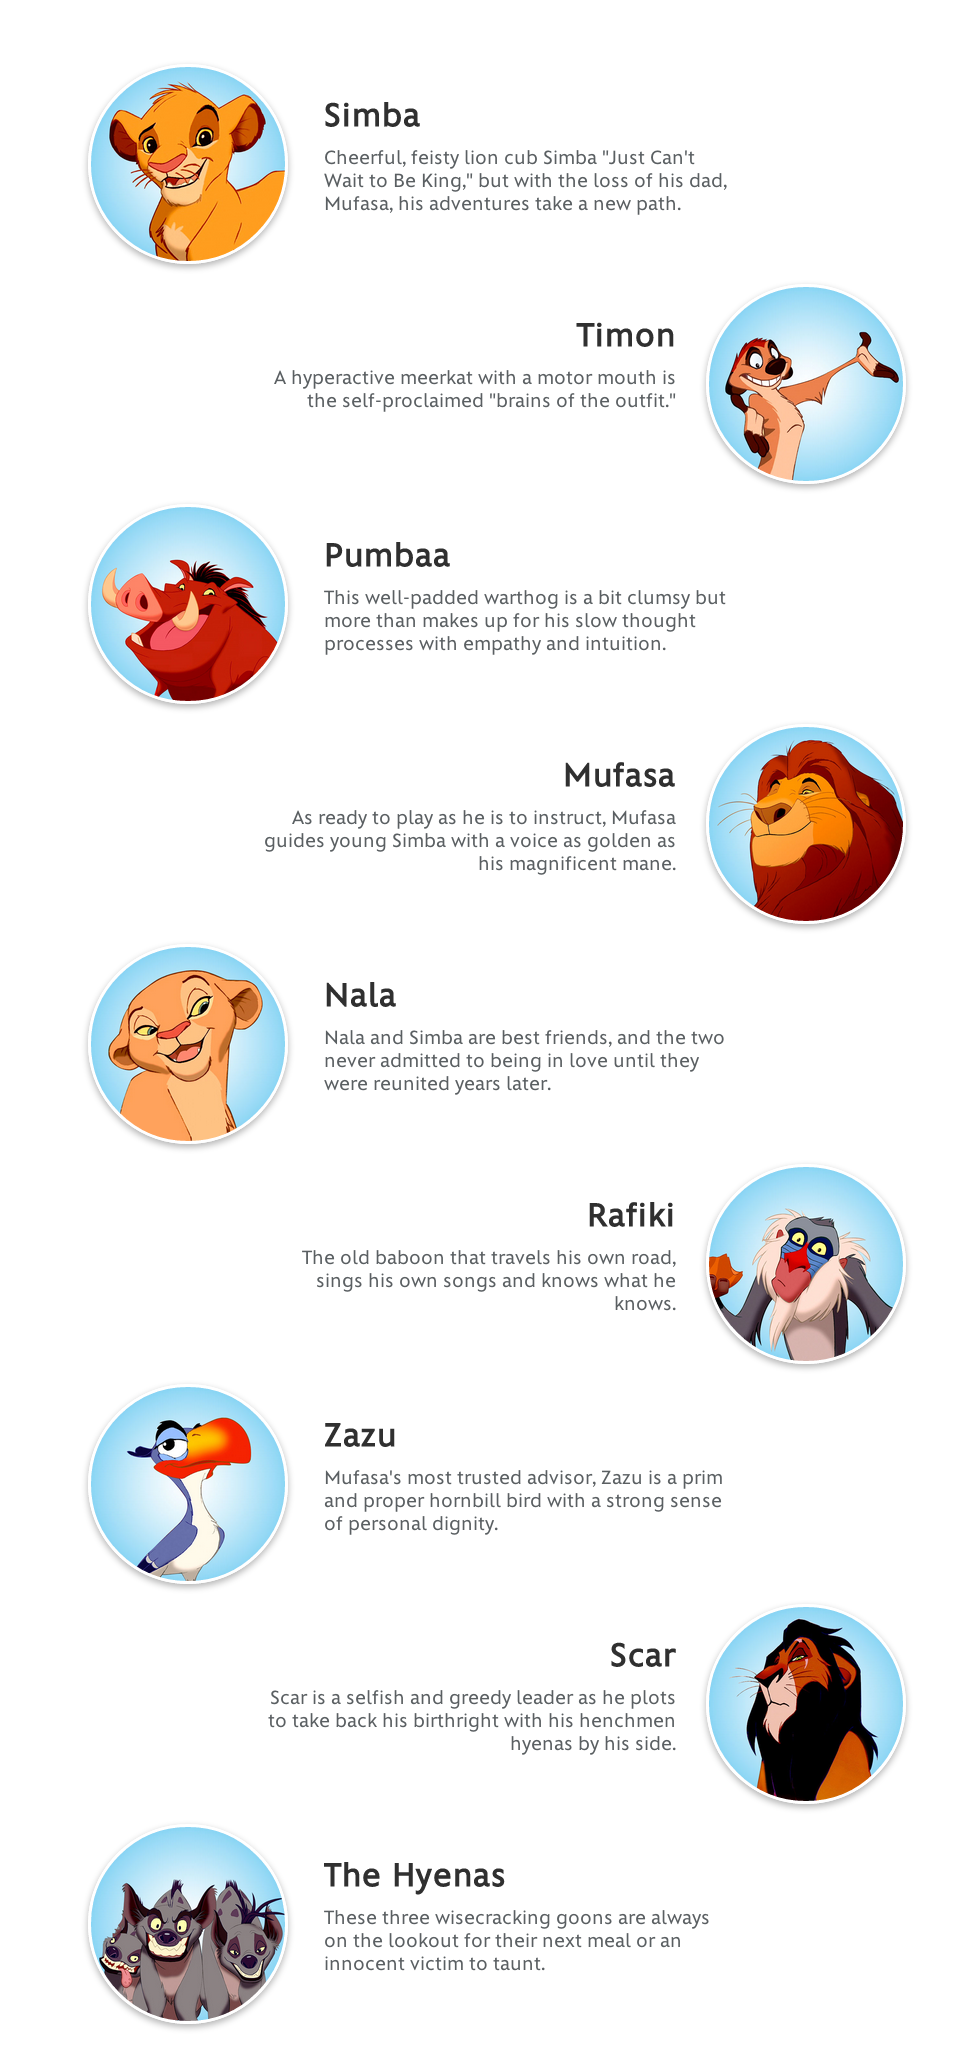 The Lion King Characters Disney Movies The Lion King Characters Lion King Movie Lion King